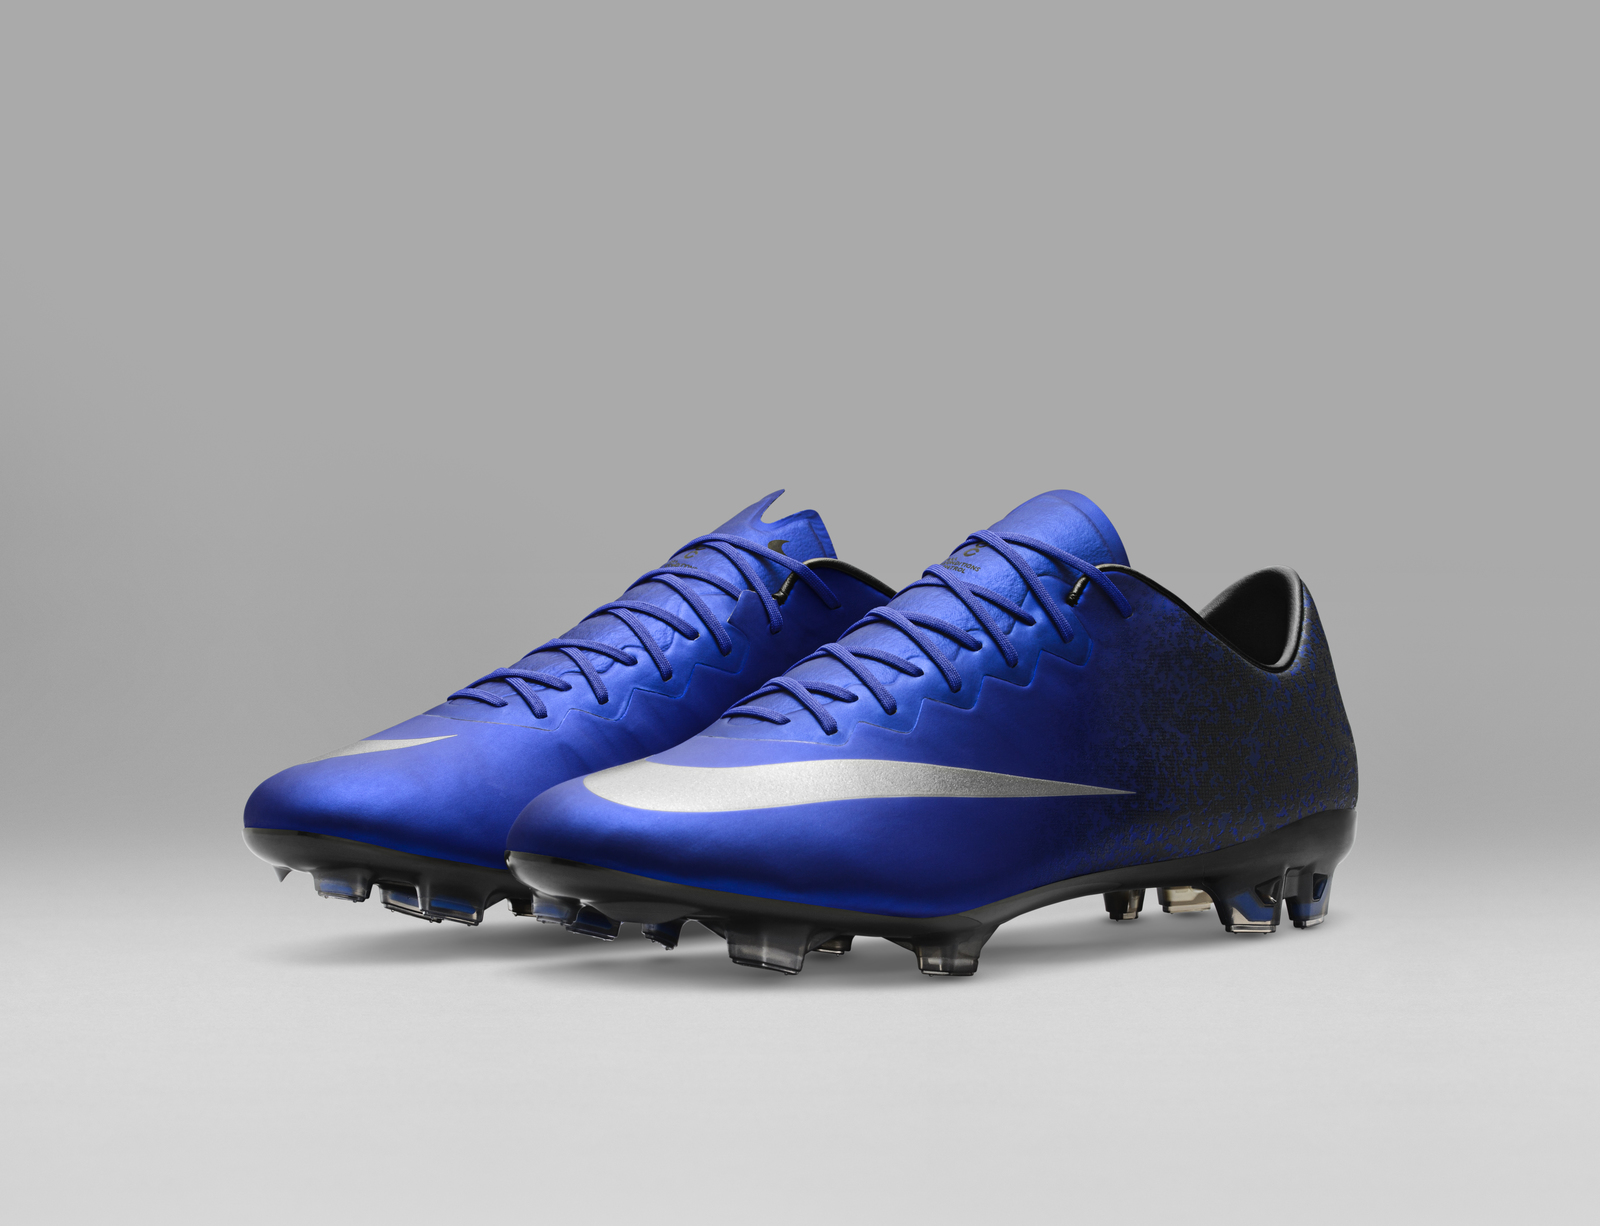 nike mercurial vapor x cr7 natural diamond football boots. Black Bedroom Furniture Sets. Home Design Ideas